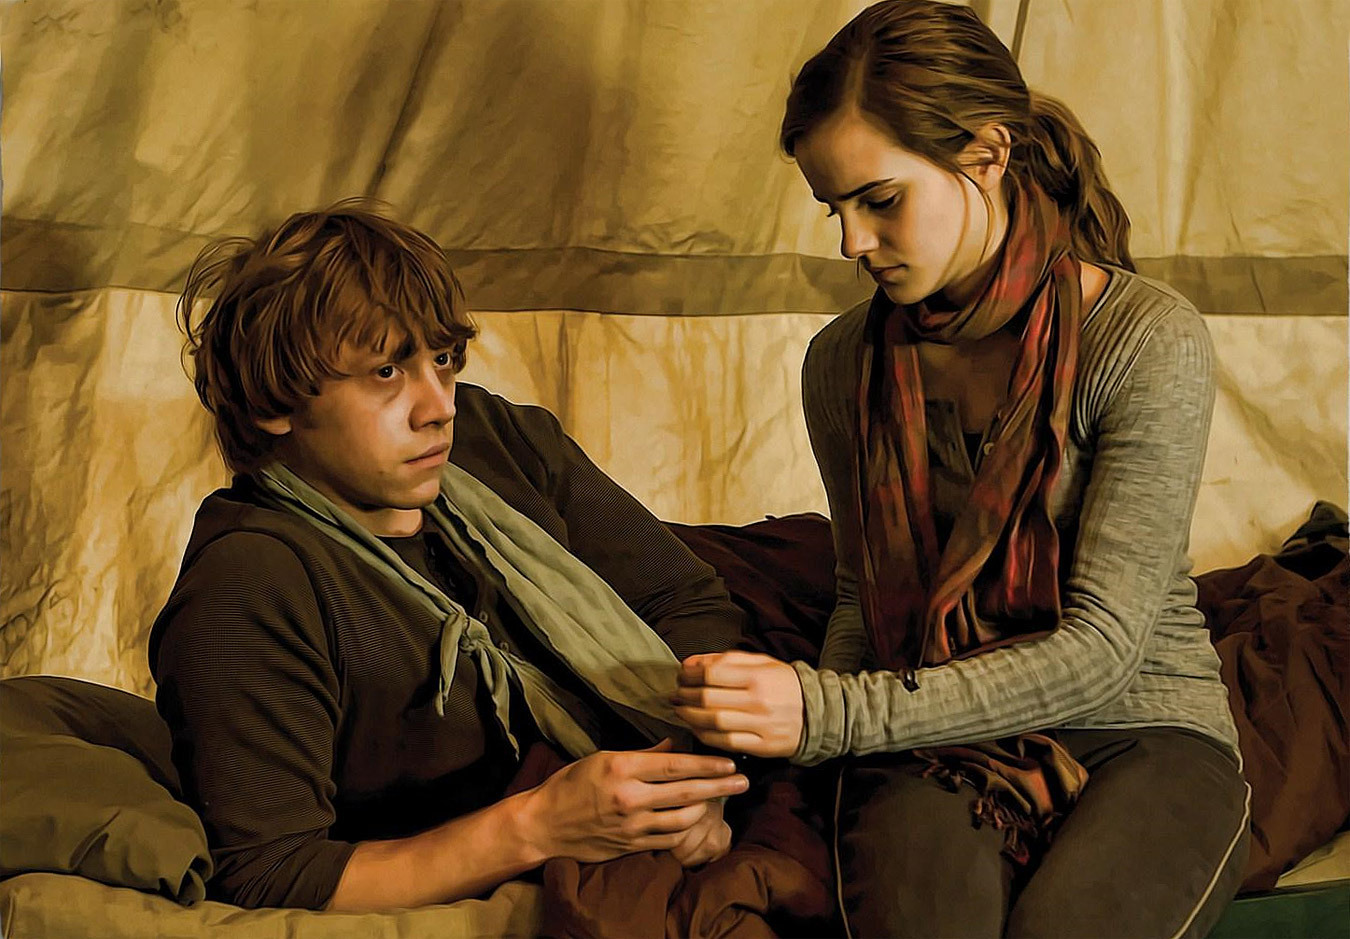 Hermione tending to Ron